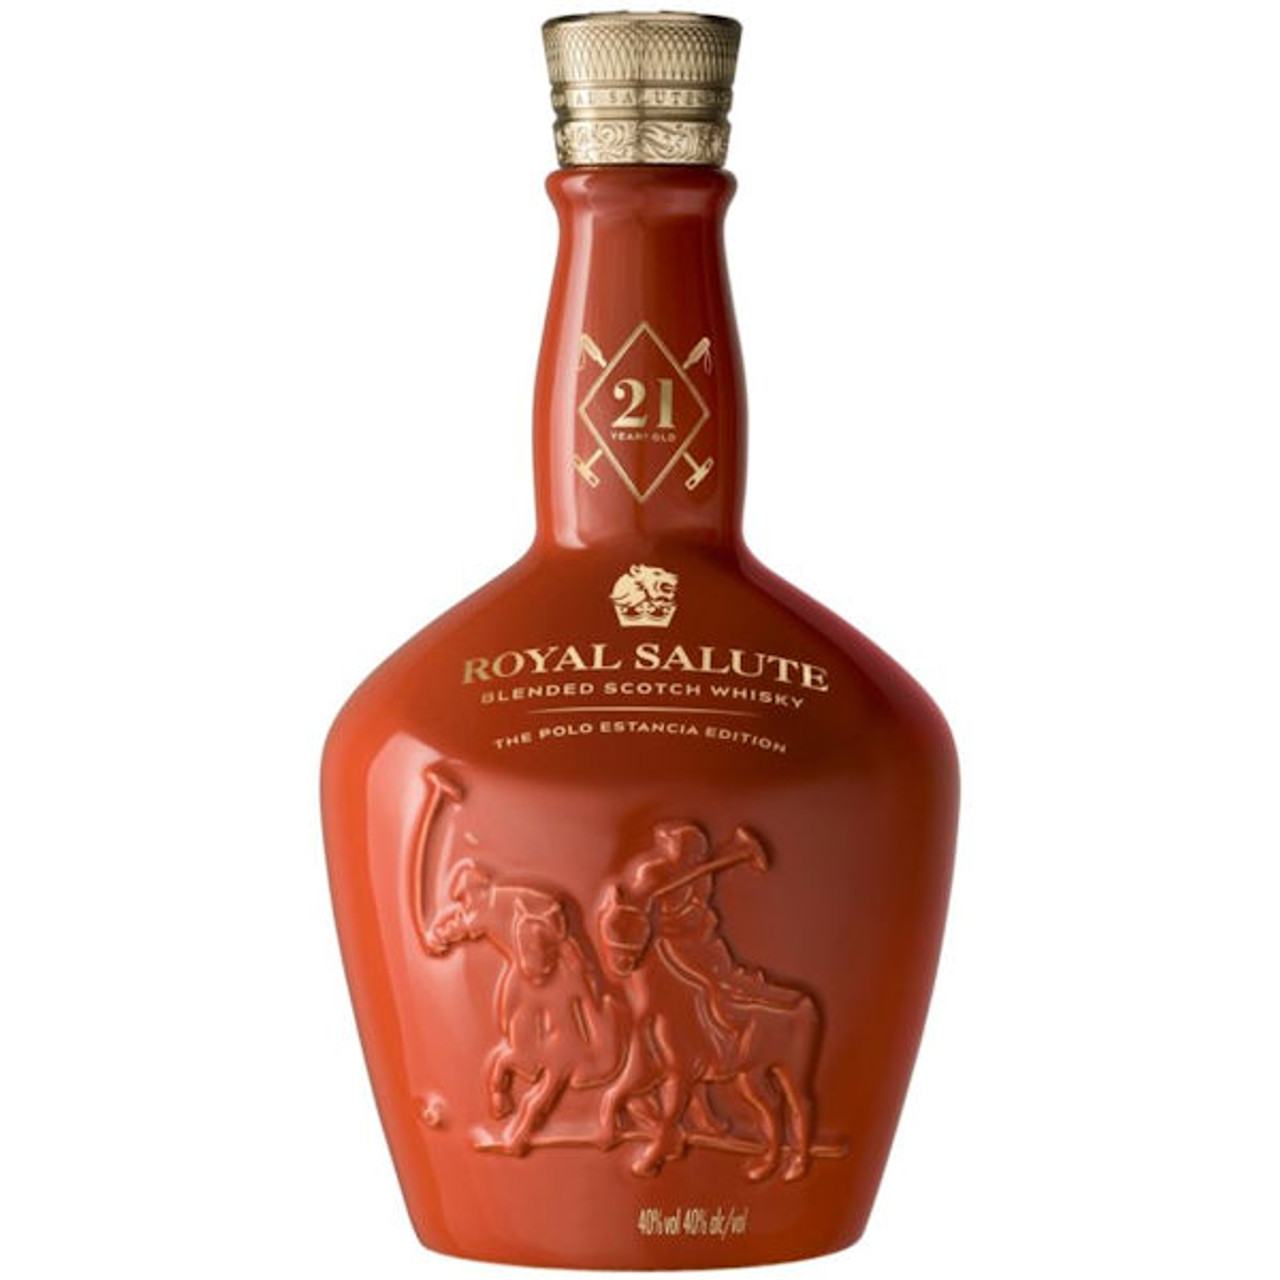 Chivas Regal Royal Salute 21 Year Old The Polo Estancia Edition Blended Scotch Whiskey 750ml